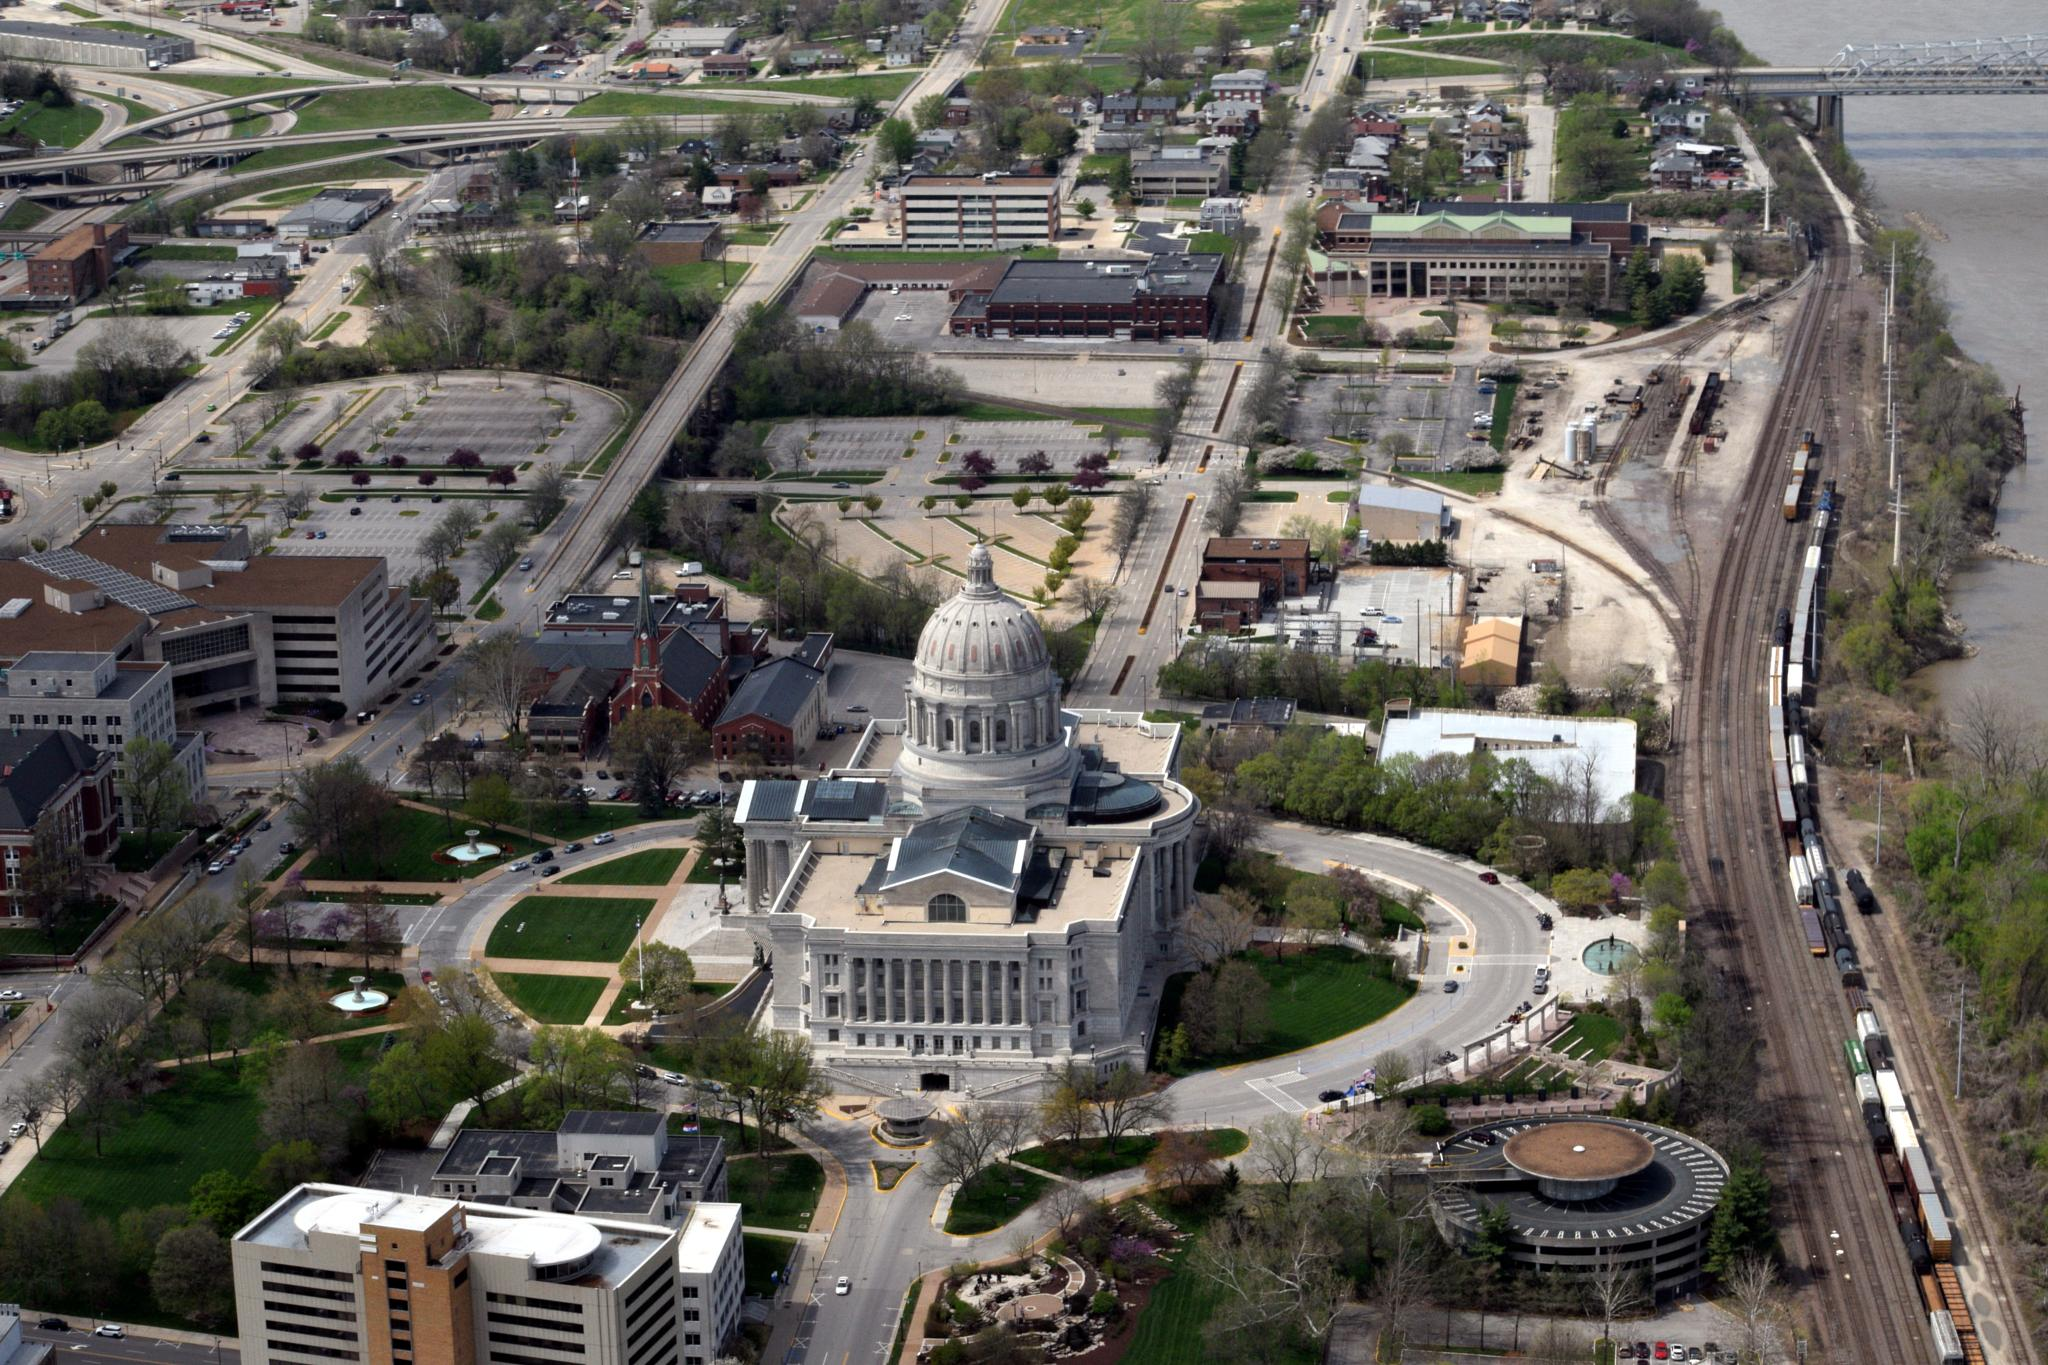 Ariel view of Jefferson City, MO by dlucia1